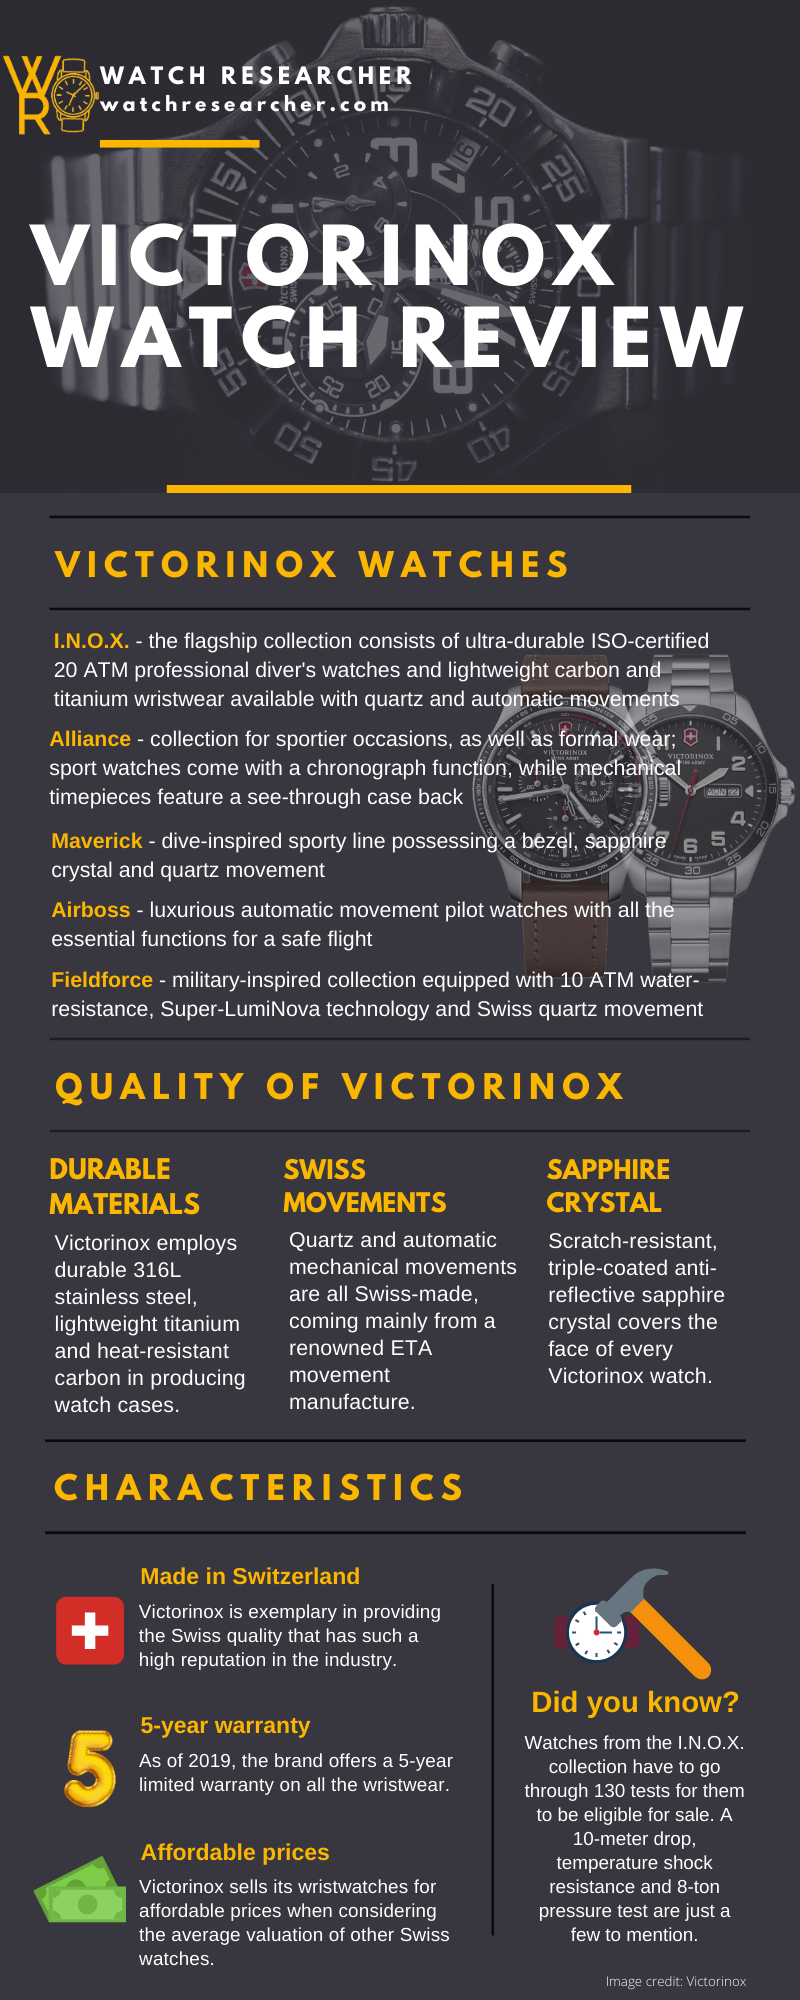 Victorinox watches review infographic